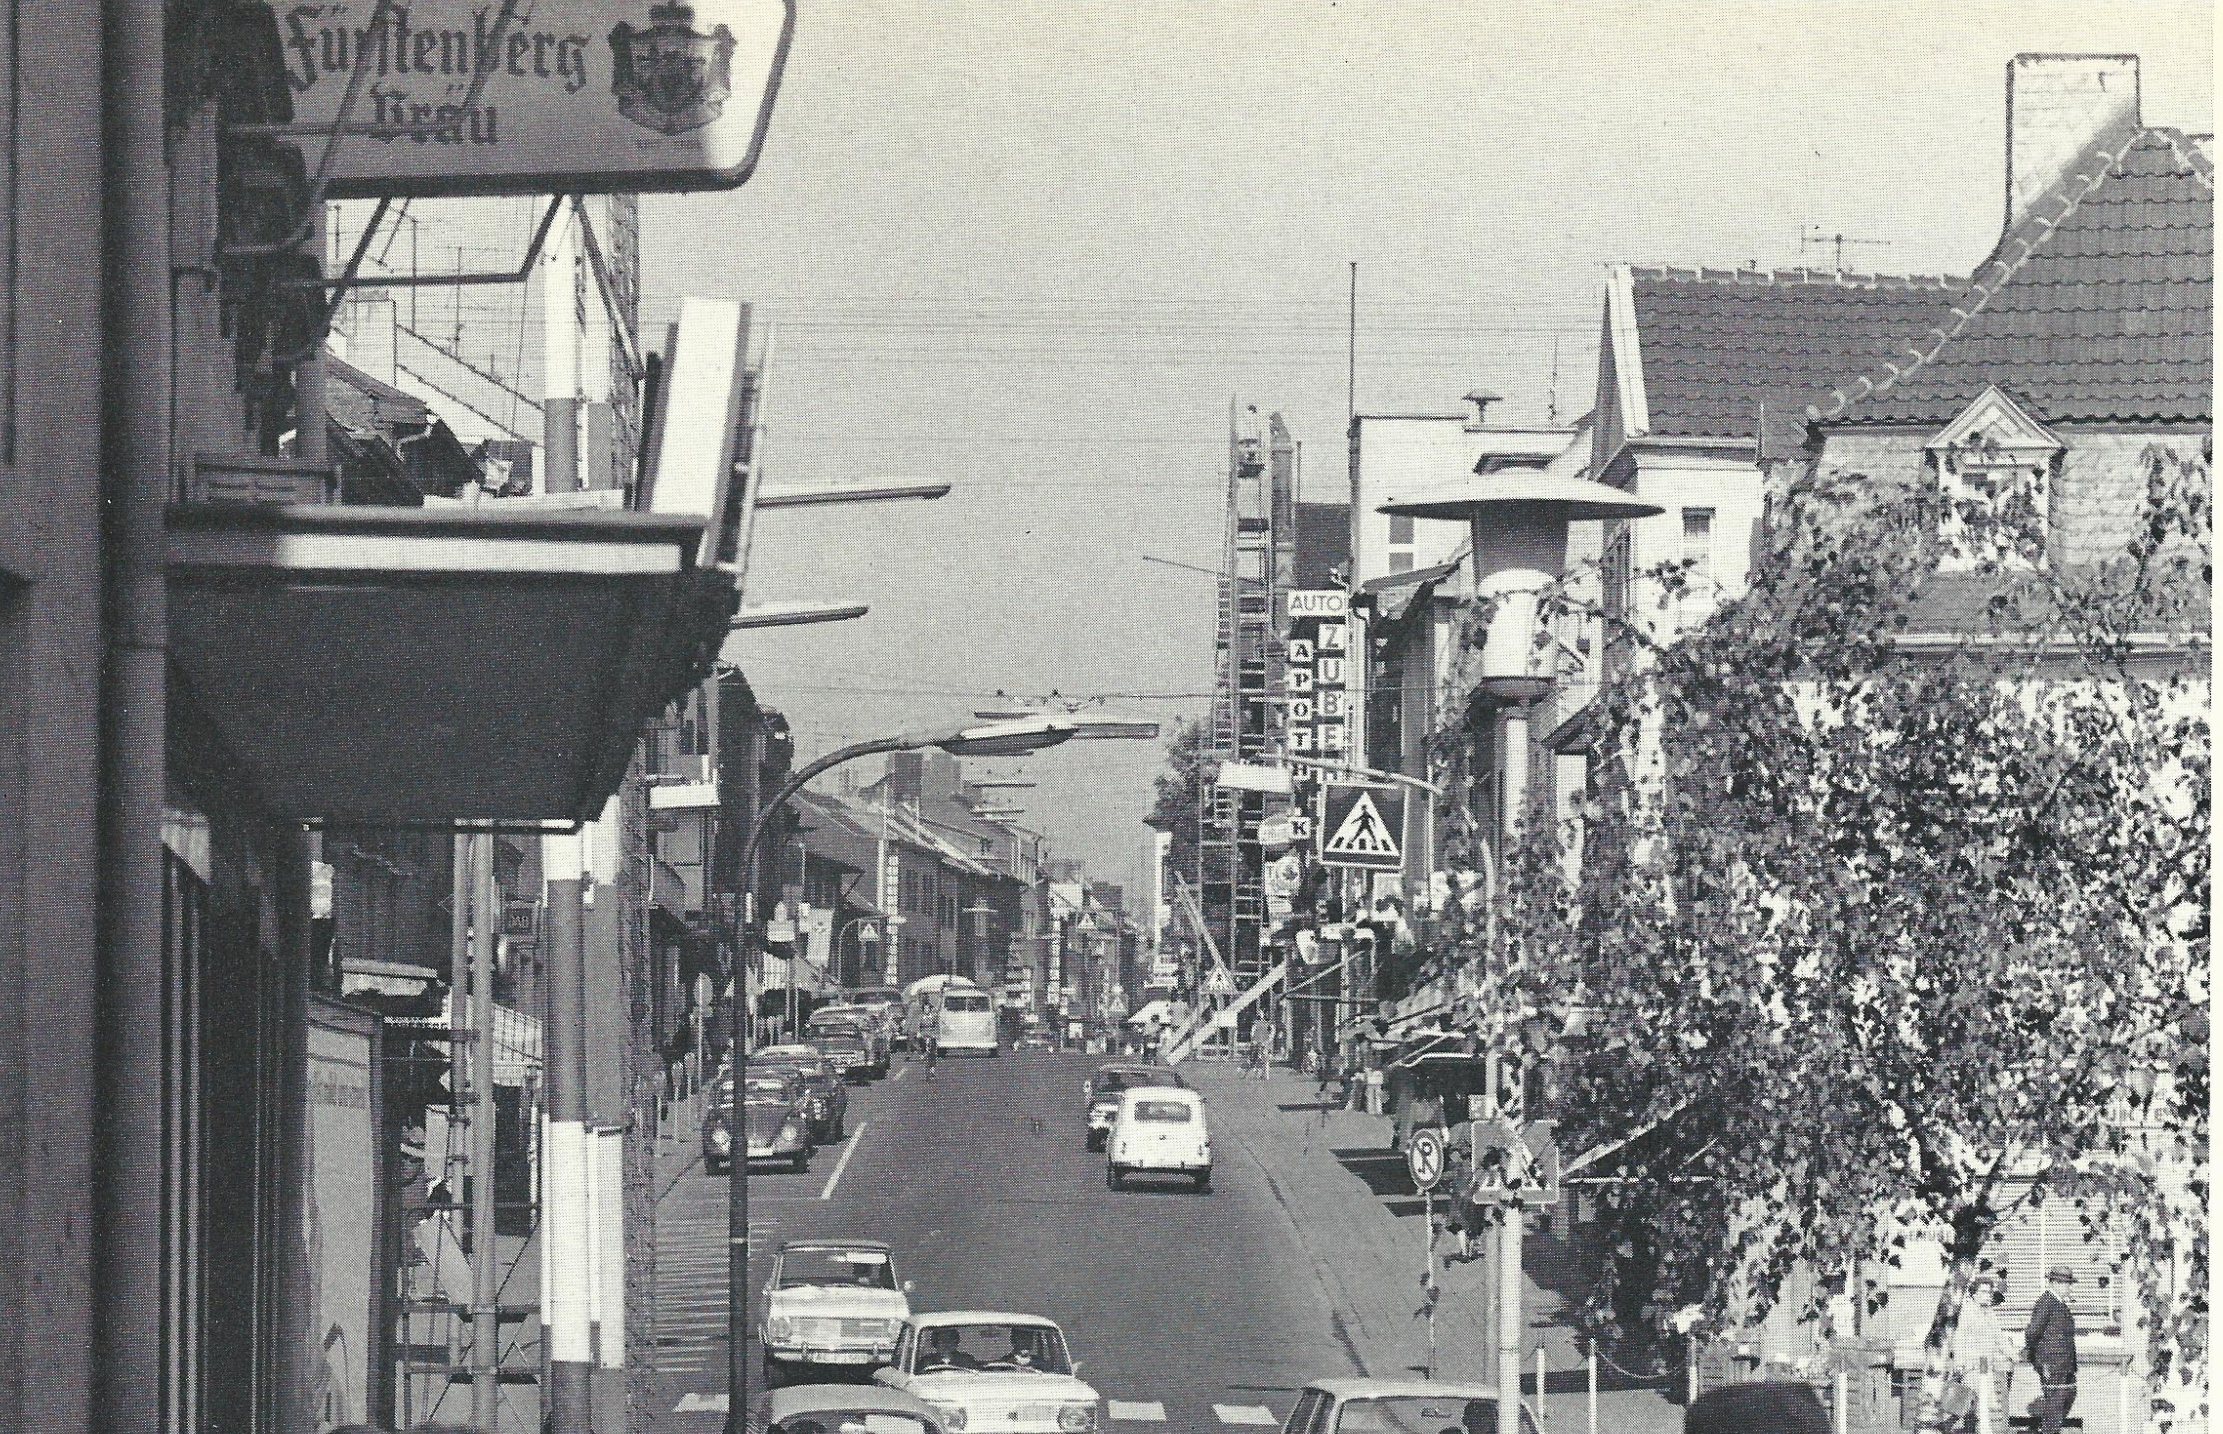 The Kaiserstraße is the main commercial street and important motorway through Würselens (circa 1965)